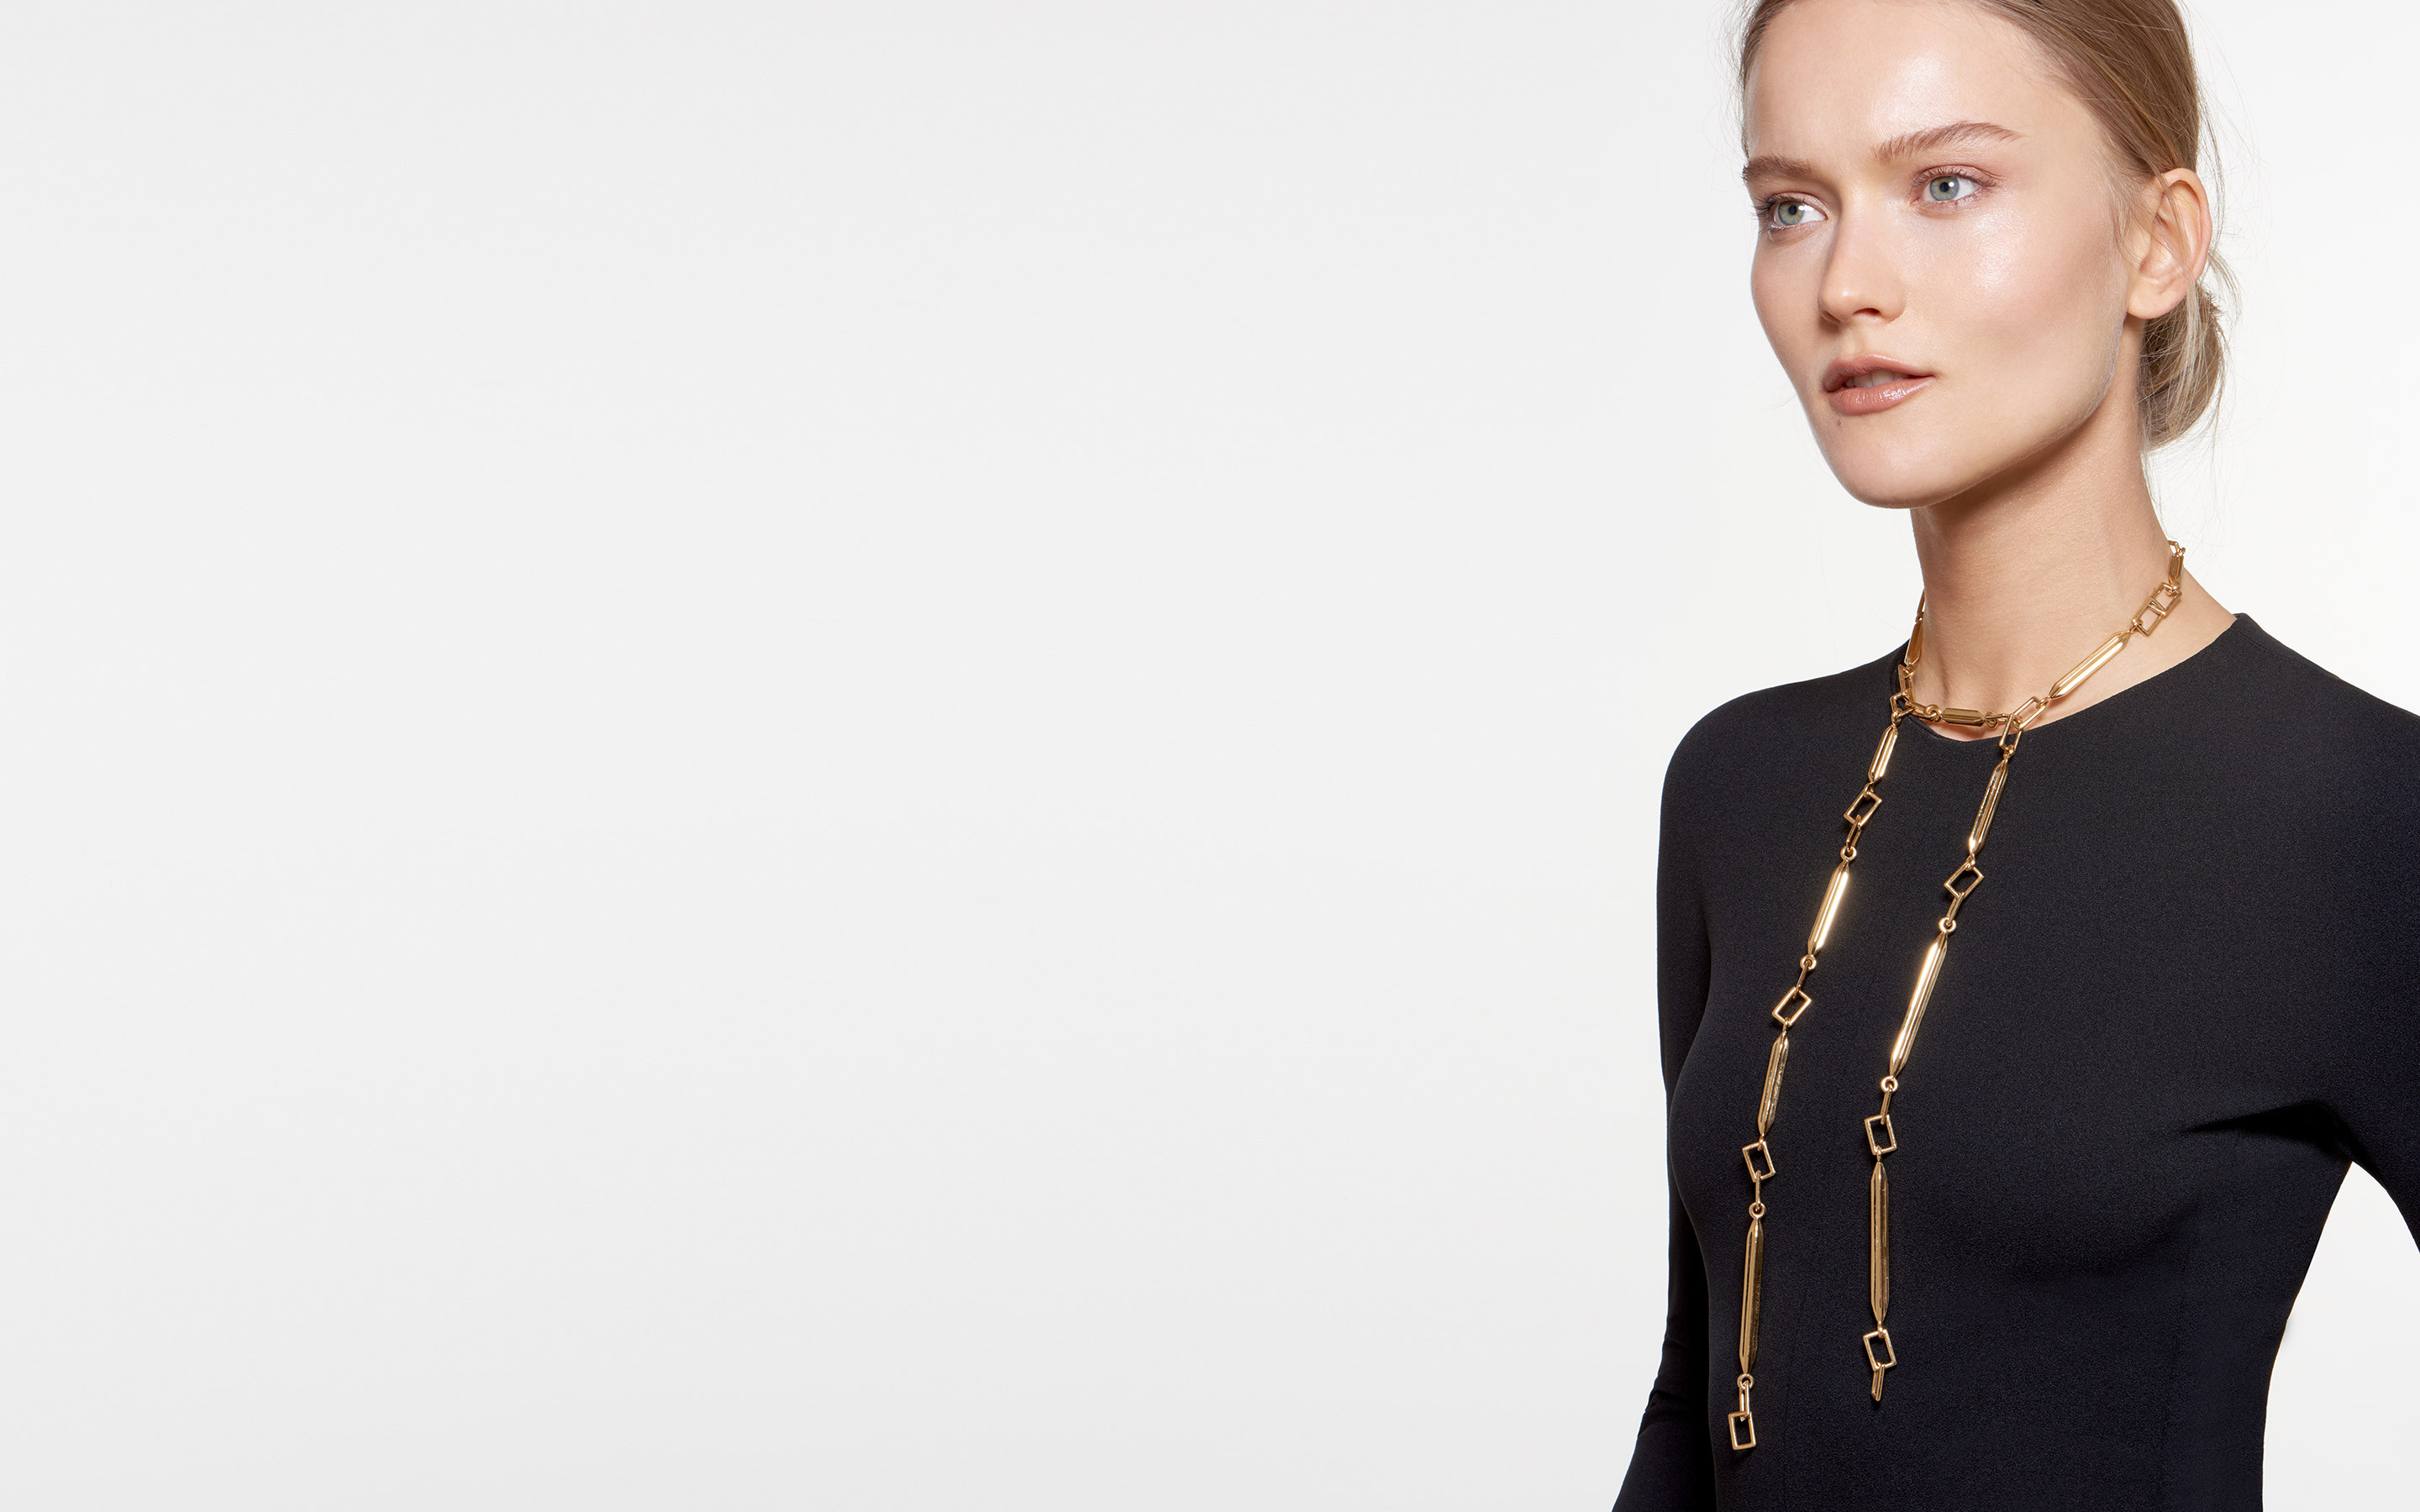 bold blonde woman modeling 22 karat gold necklace made of angular links